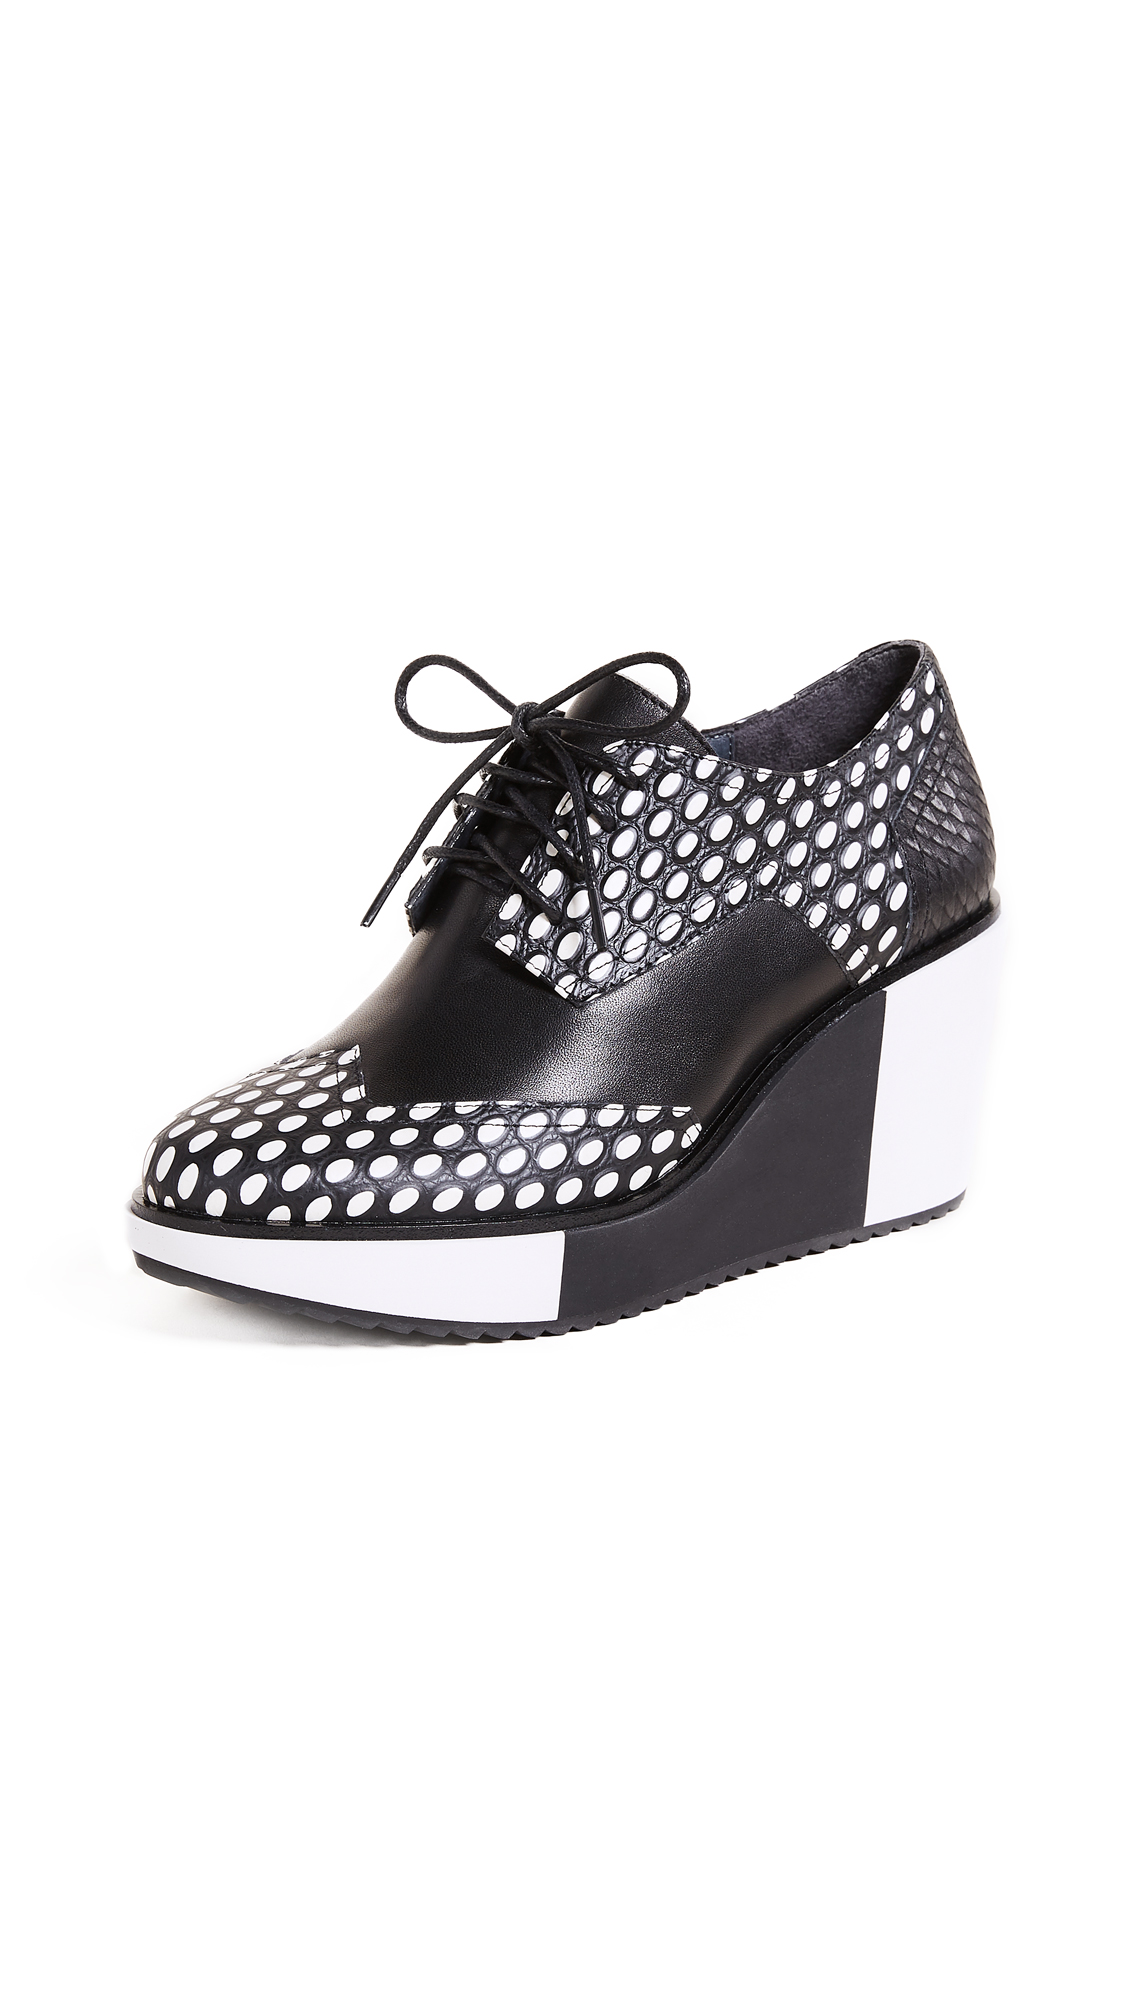 United Nude Geo Wing Platform Oxfords - Black/White